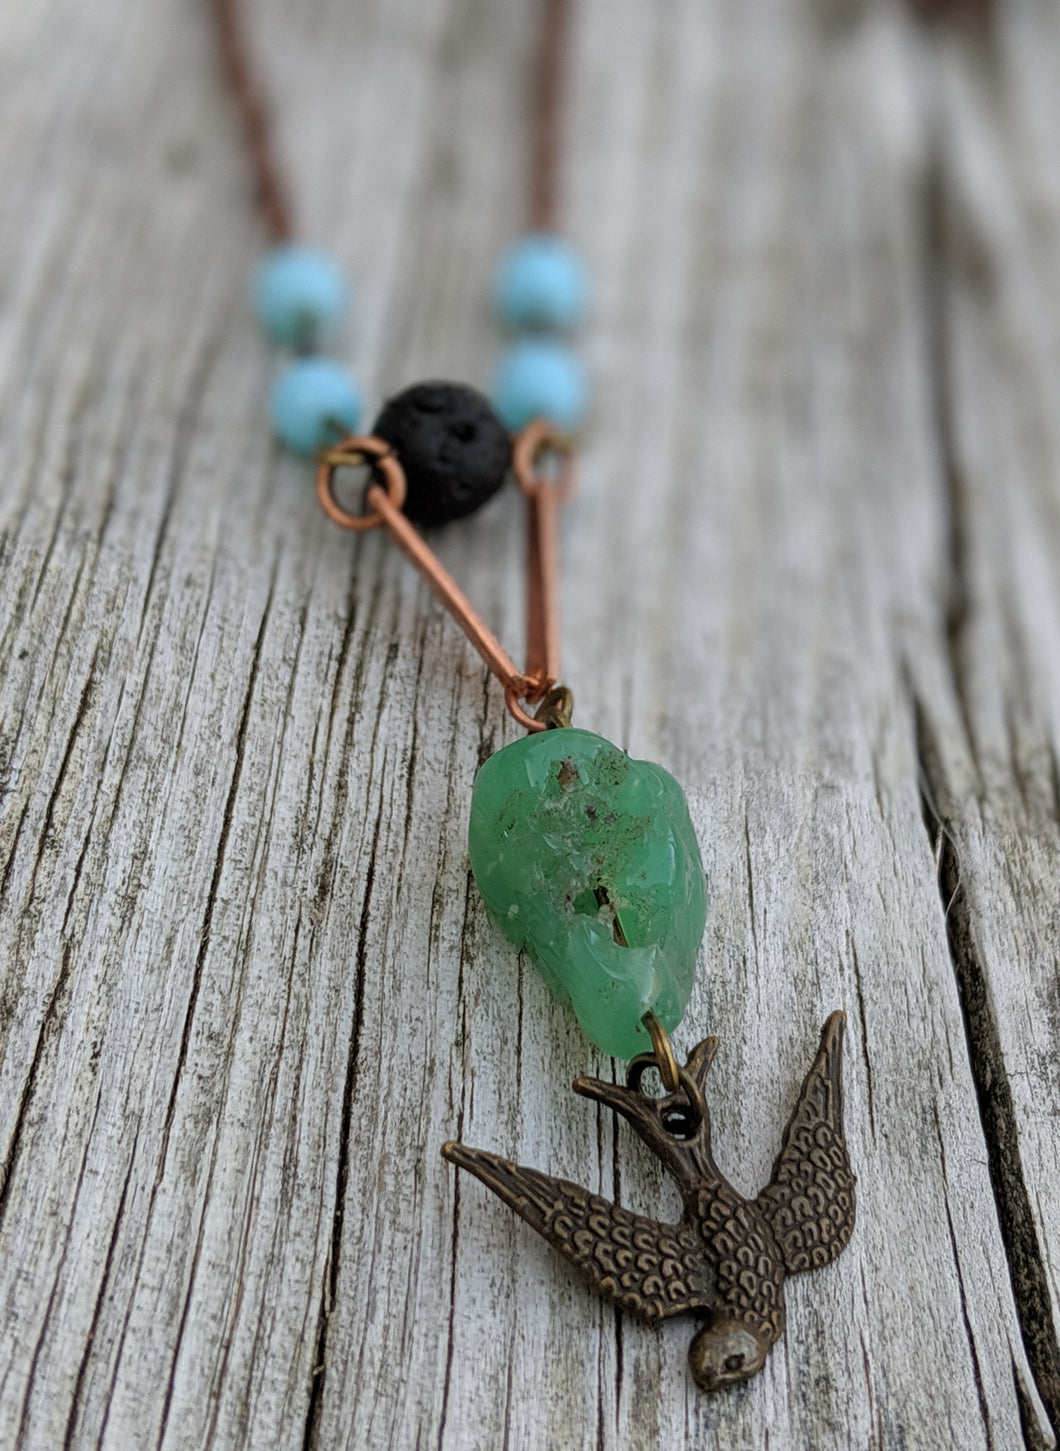 Earth, Wind, and Fire Swallow Necklace - Minxes' Trinkets